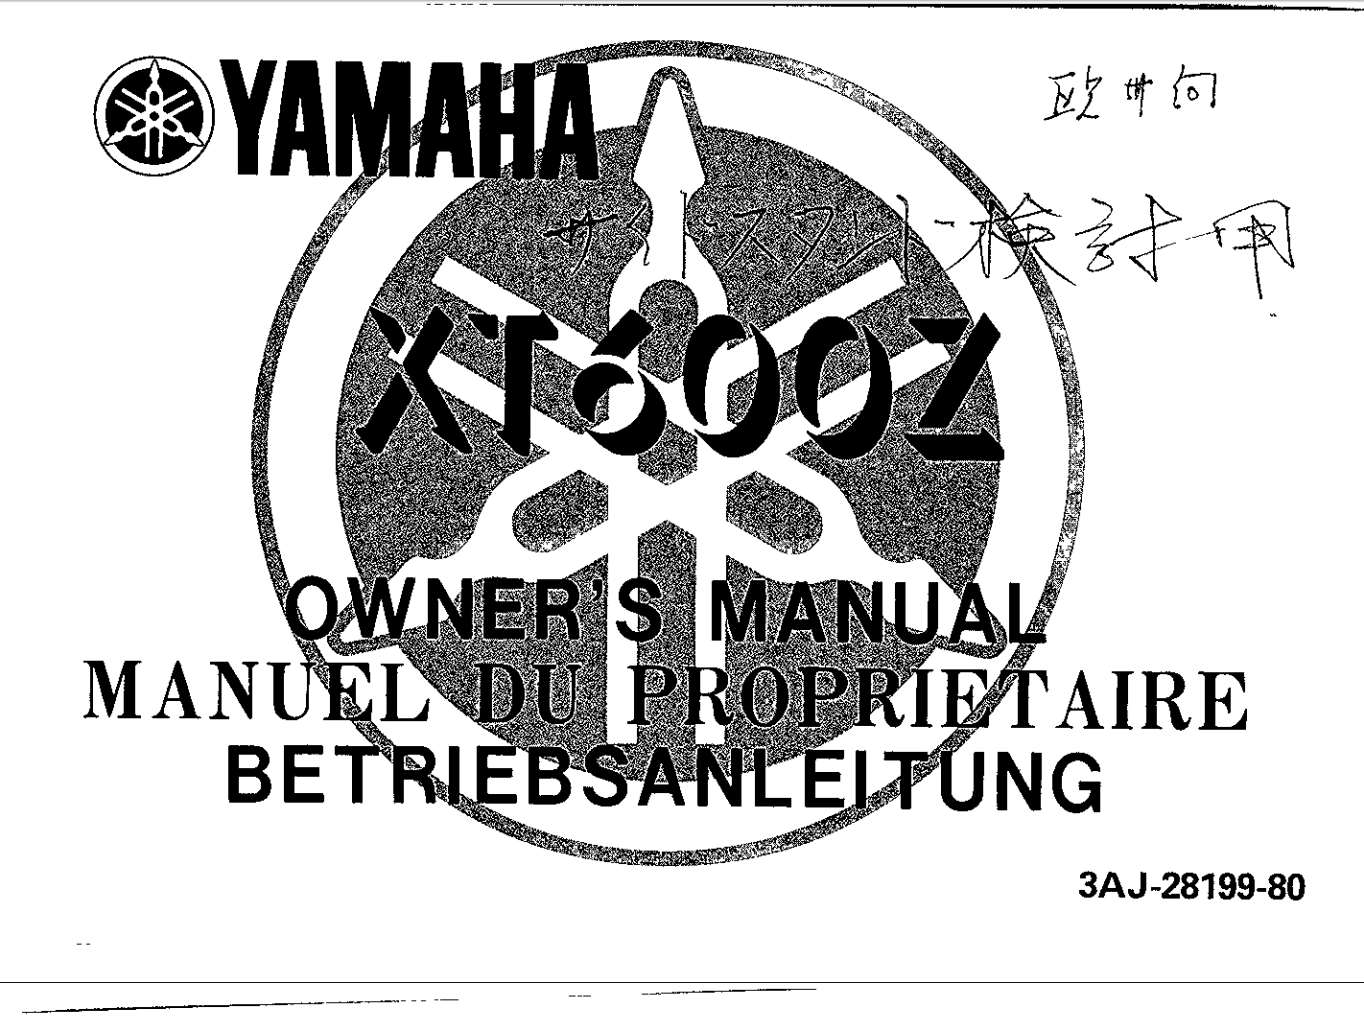 Yamaha XT1600 Z 1988 Owner's Manual